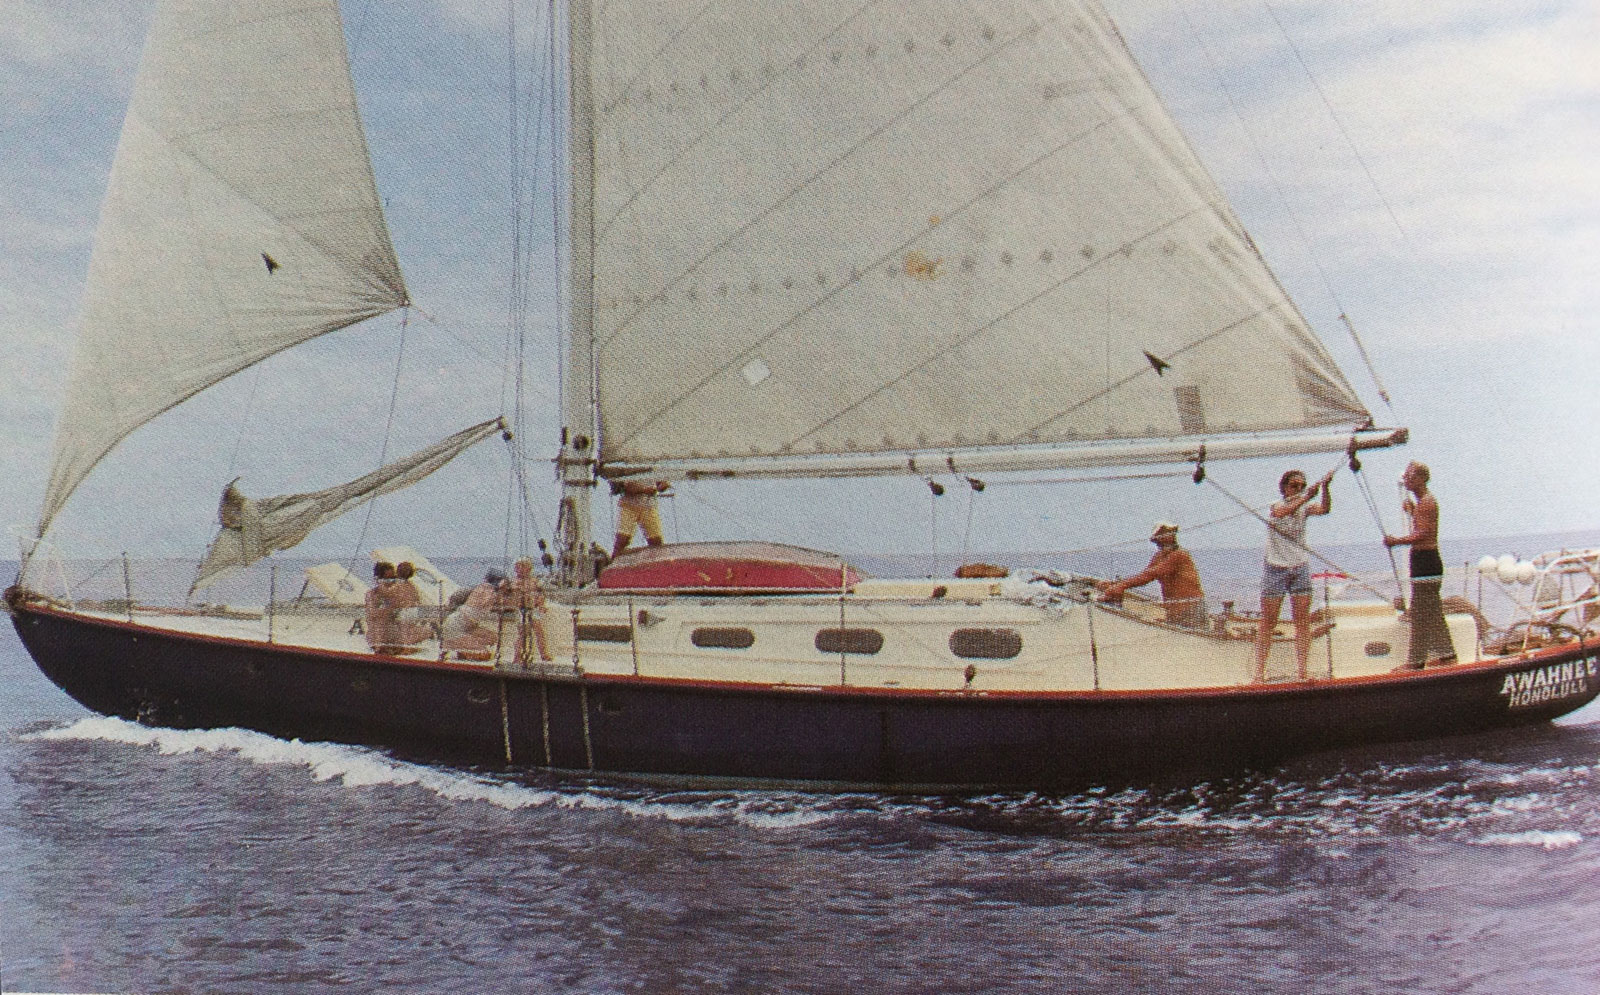 Ahwahnee at sea